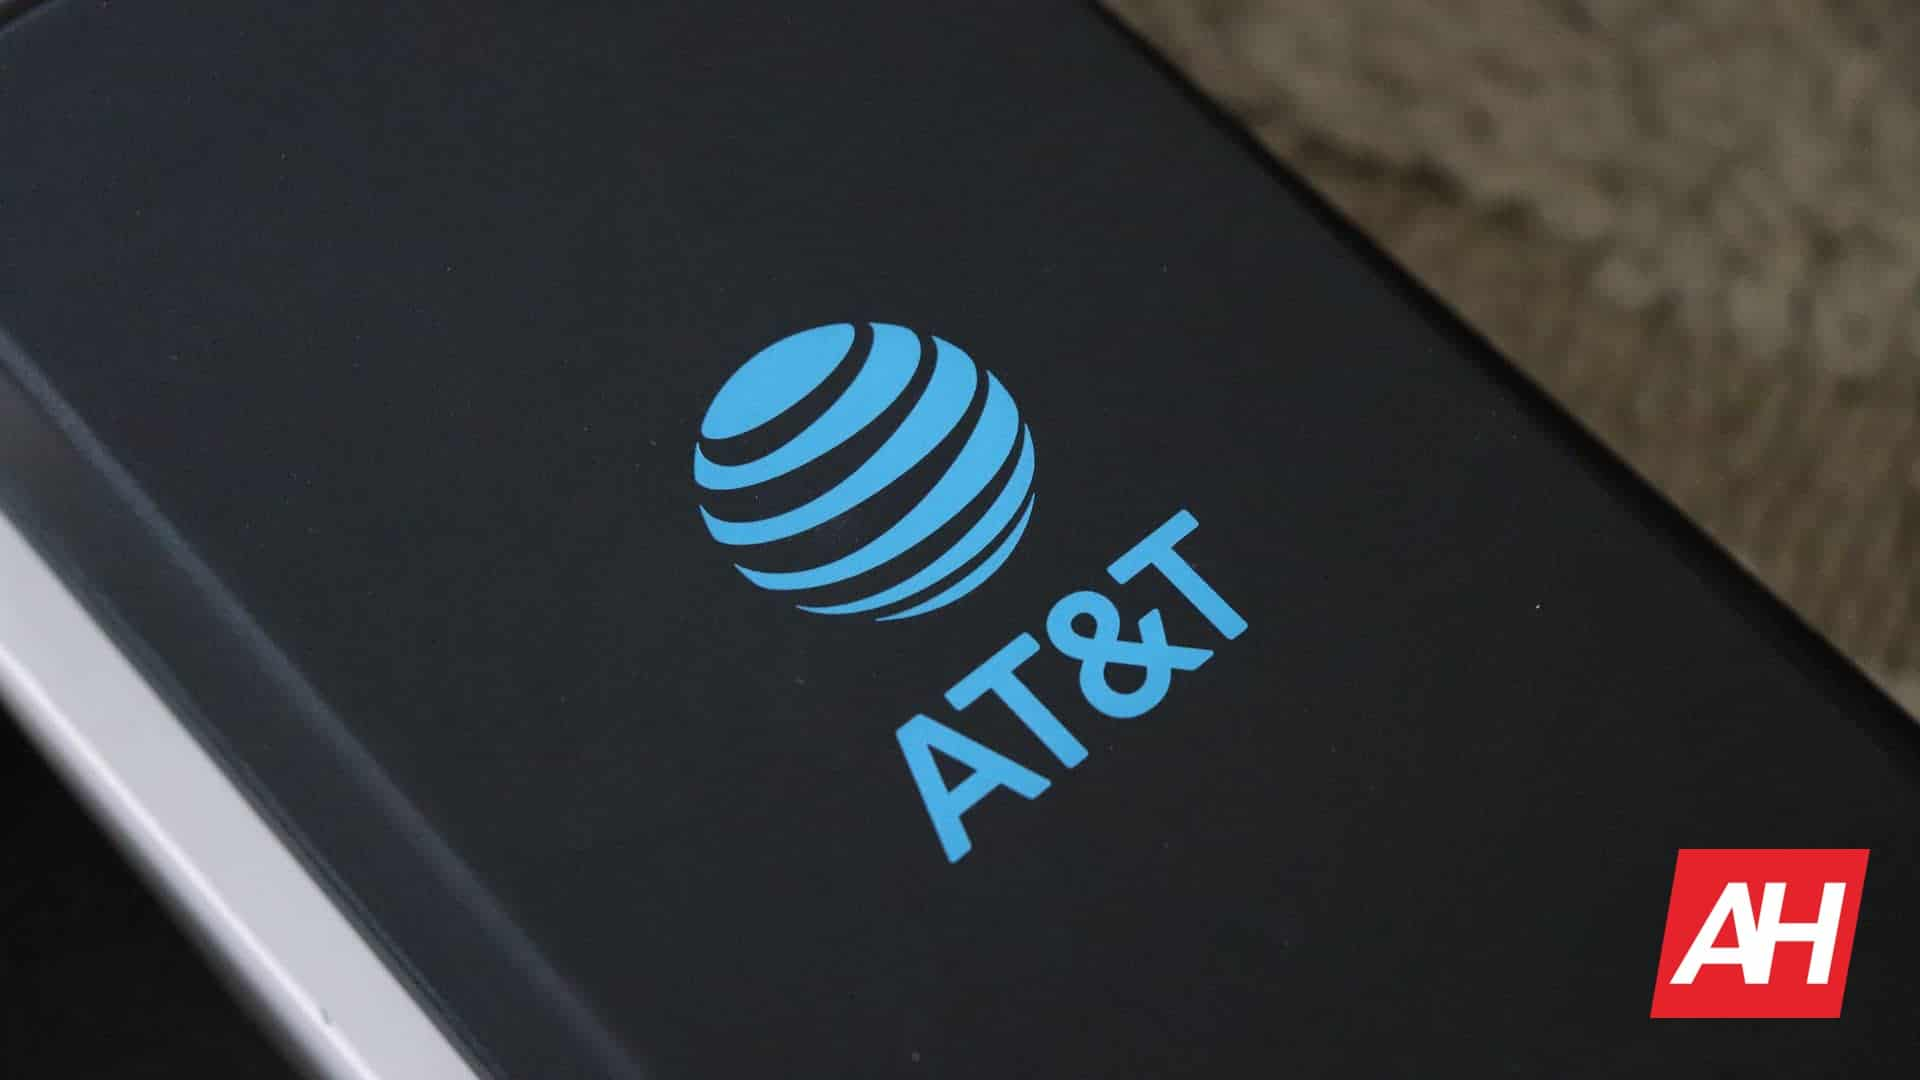 AT&T Has A Way For Low-Income Families To Save On Broadband Bills